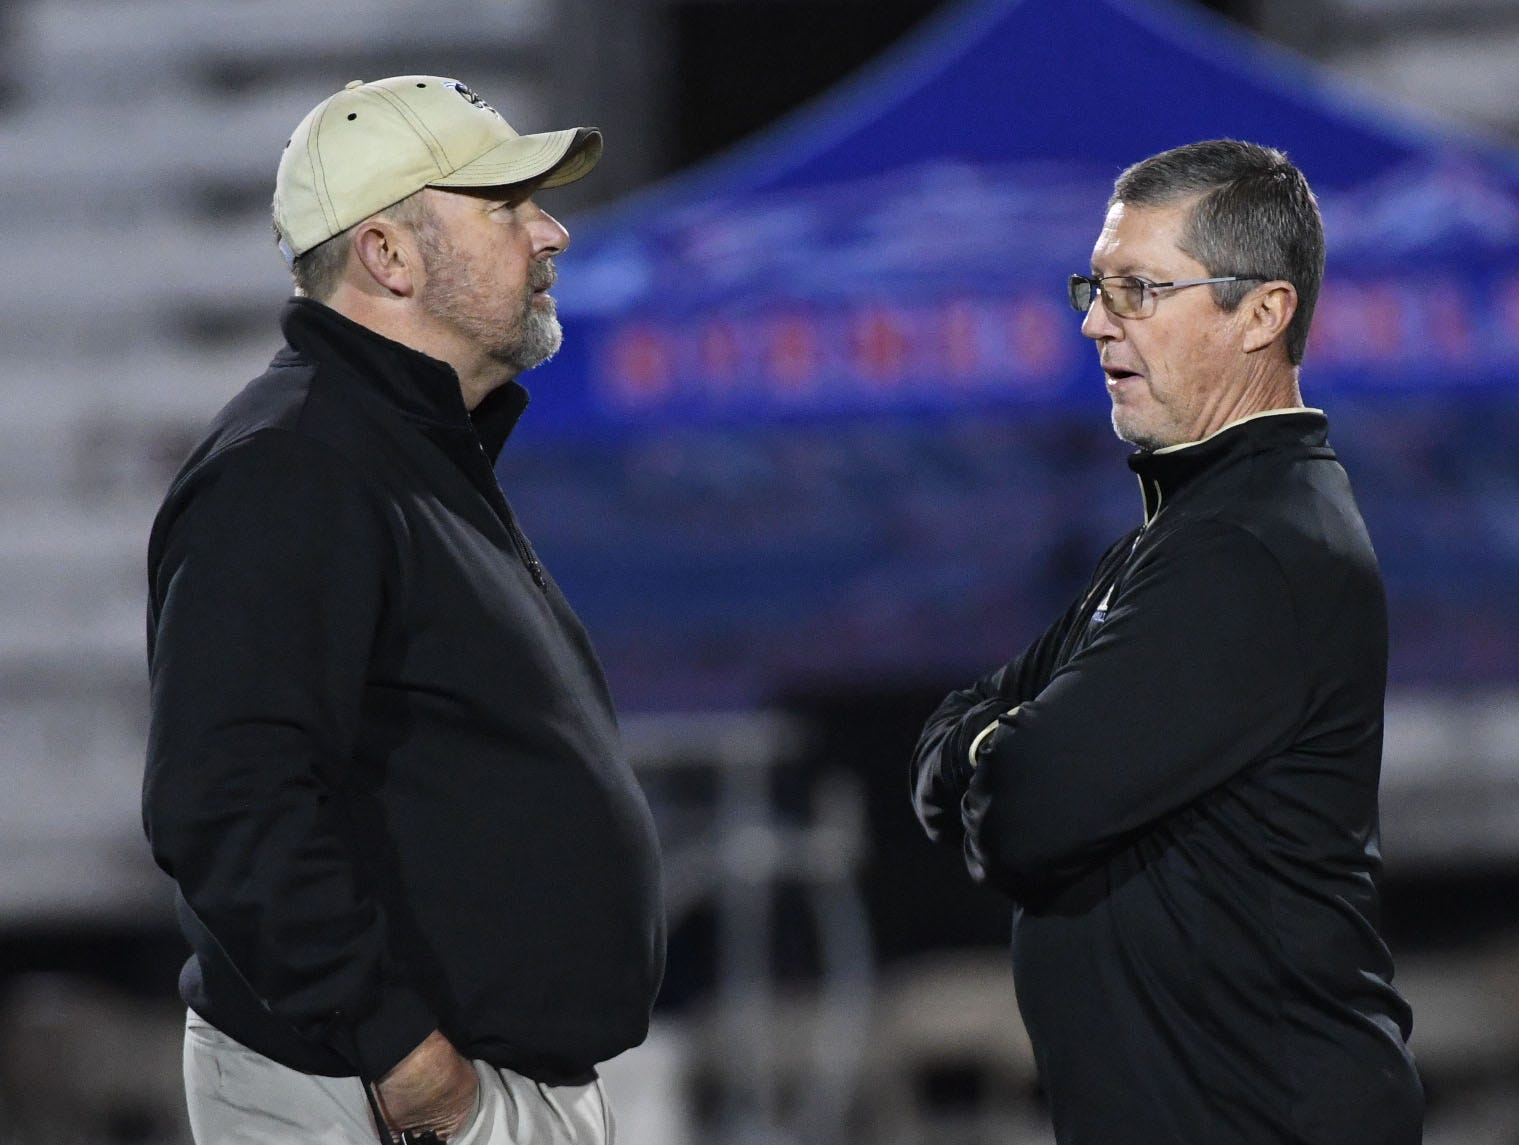 TL Hanna High School Athletic Director John Cann, left, with TL Hanna head coach Jeff Herron before the kickoff of the Class AAAAA state playoffs at TL Hanna High School in Anderson on Friday, November 30, 2018.